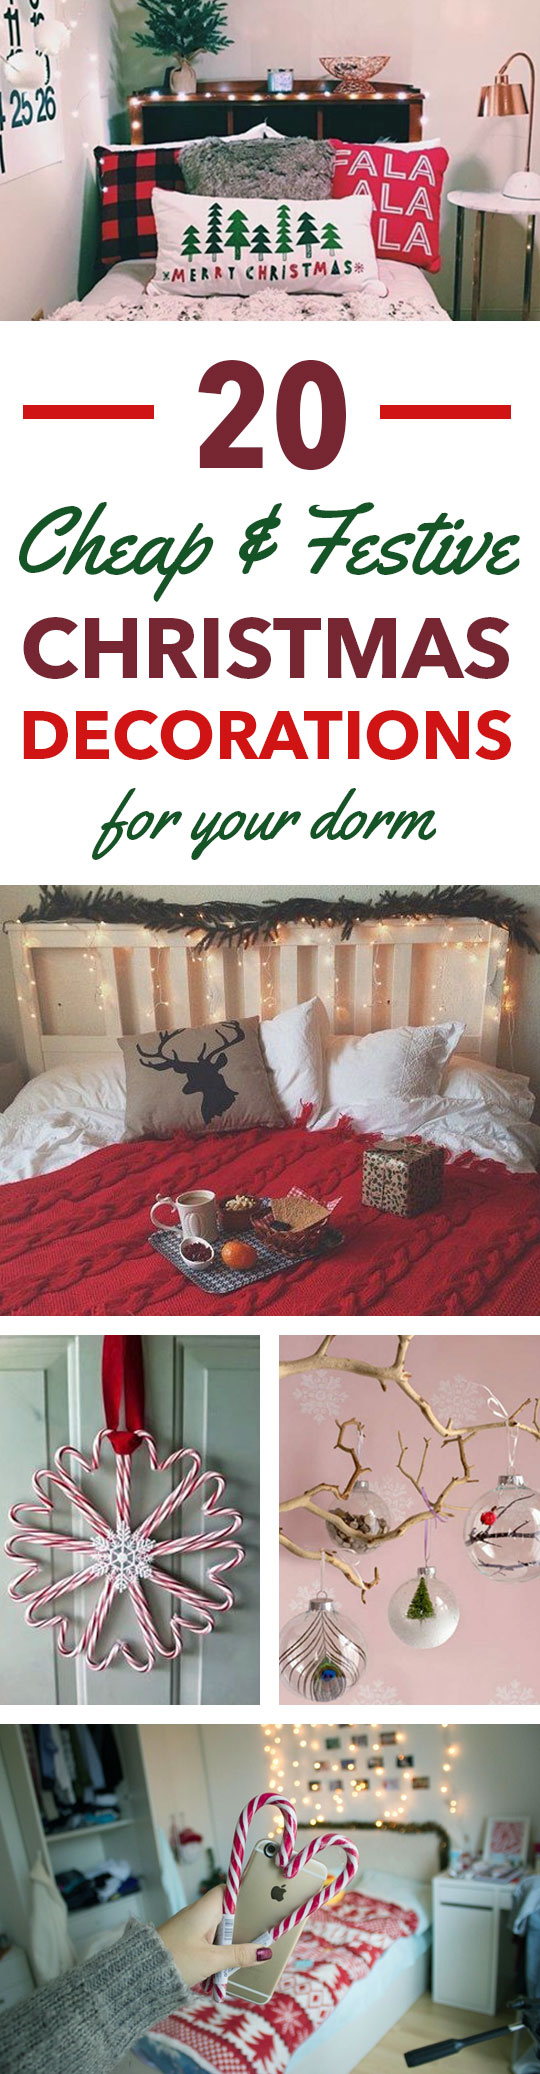 20 Cheap Festive Items To Decorate Your Dorm For